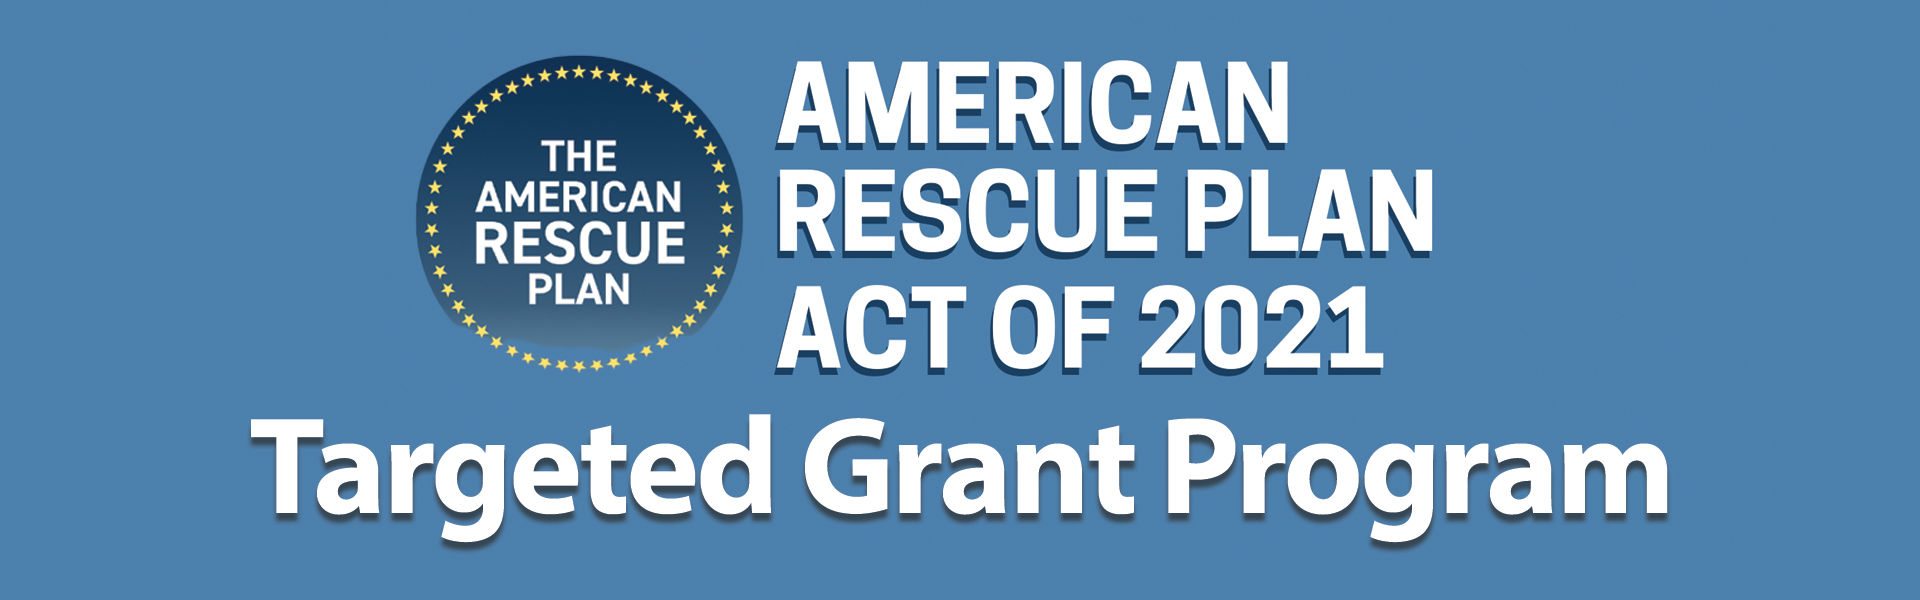 American Rescue Plan Act of 2021 Targeted Grant Program